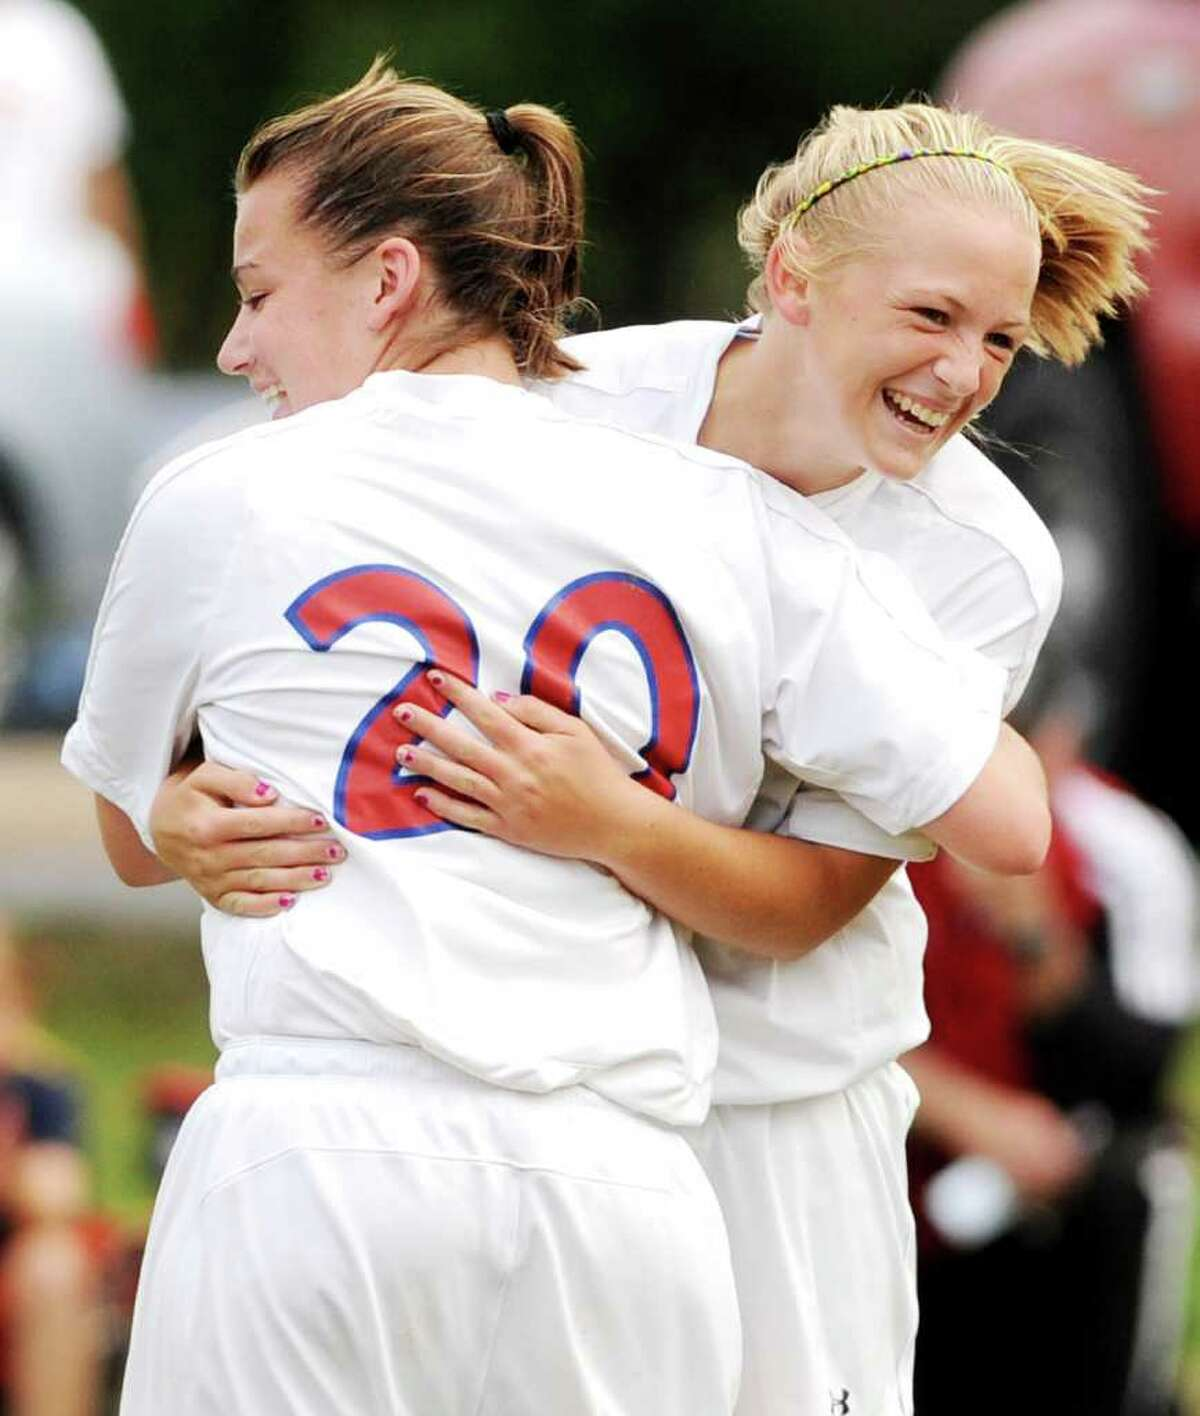 L-R: No. 20, Maple Hill Girls Varsity Soccer Star Meeghan Arno, celebrates as she hugs teammate, No. 8, her fellow senior striker, and team captain, Sierra Legge, after her second goal of the game and the 130th goal in her varsity career at the high school, in a game vs. Cambridge Central High School, held at Maple Hill in Schodack, NY, on Monday, Oct. 11, 2010. I believe Legge got the assist on the goal. Photos for daily sports coverage, a profile story on Arno, and for the web photo gallery. (Luanne M. Ferris / Times Union )